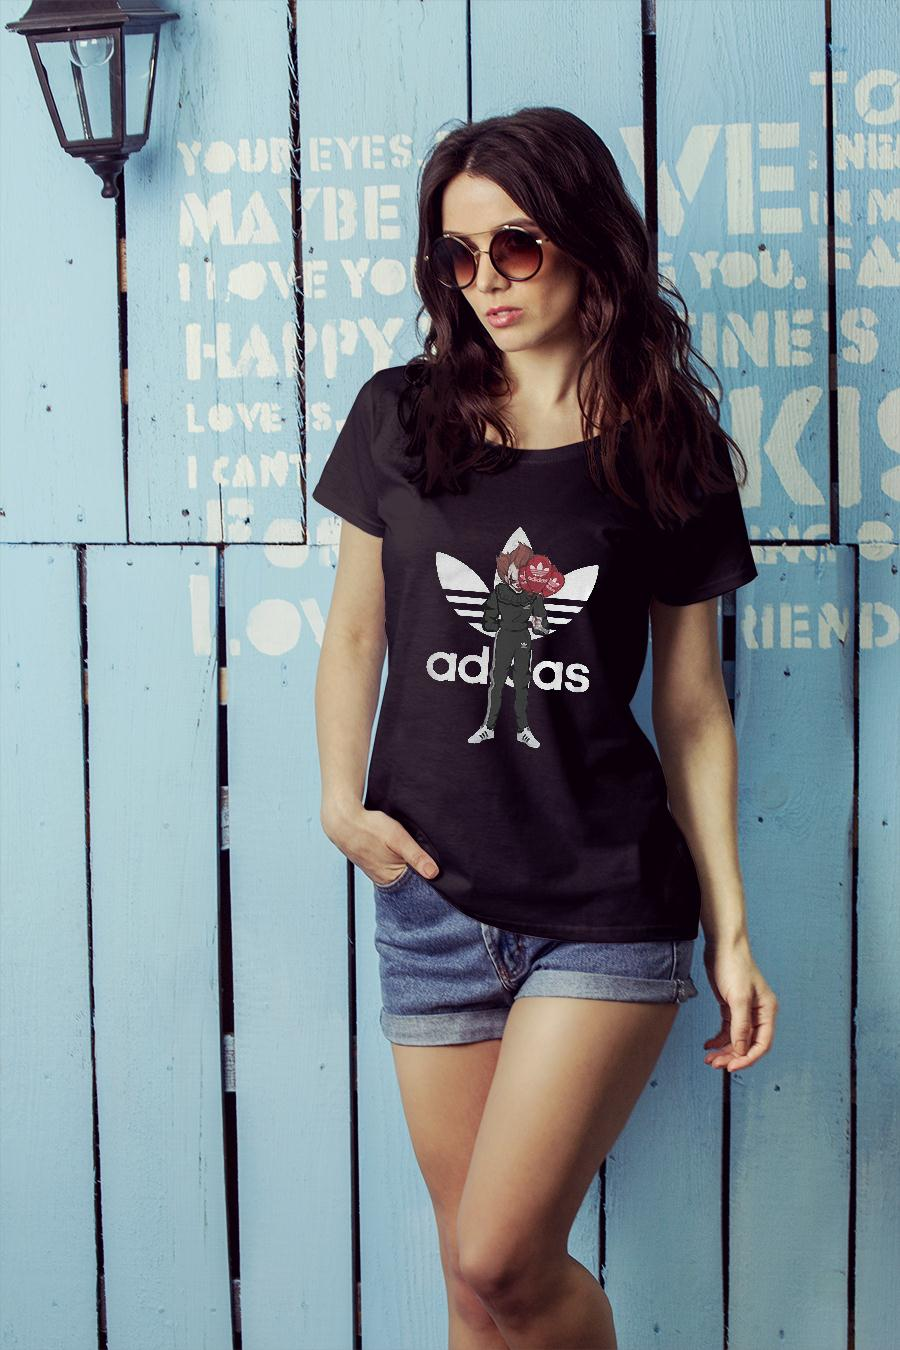 Pennywise adidas shirt ladies tee official